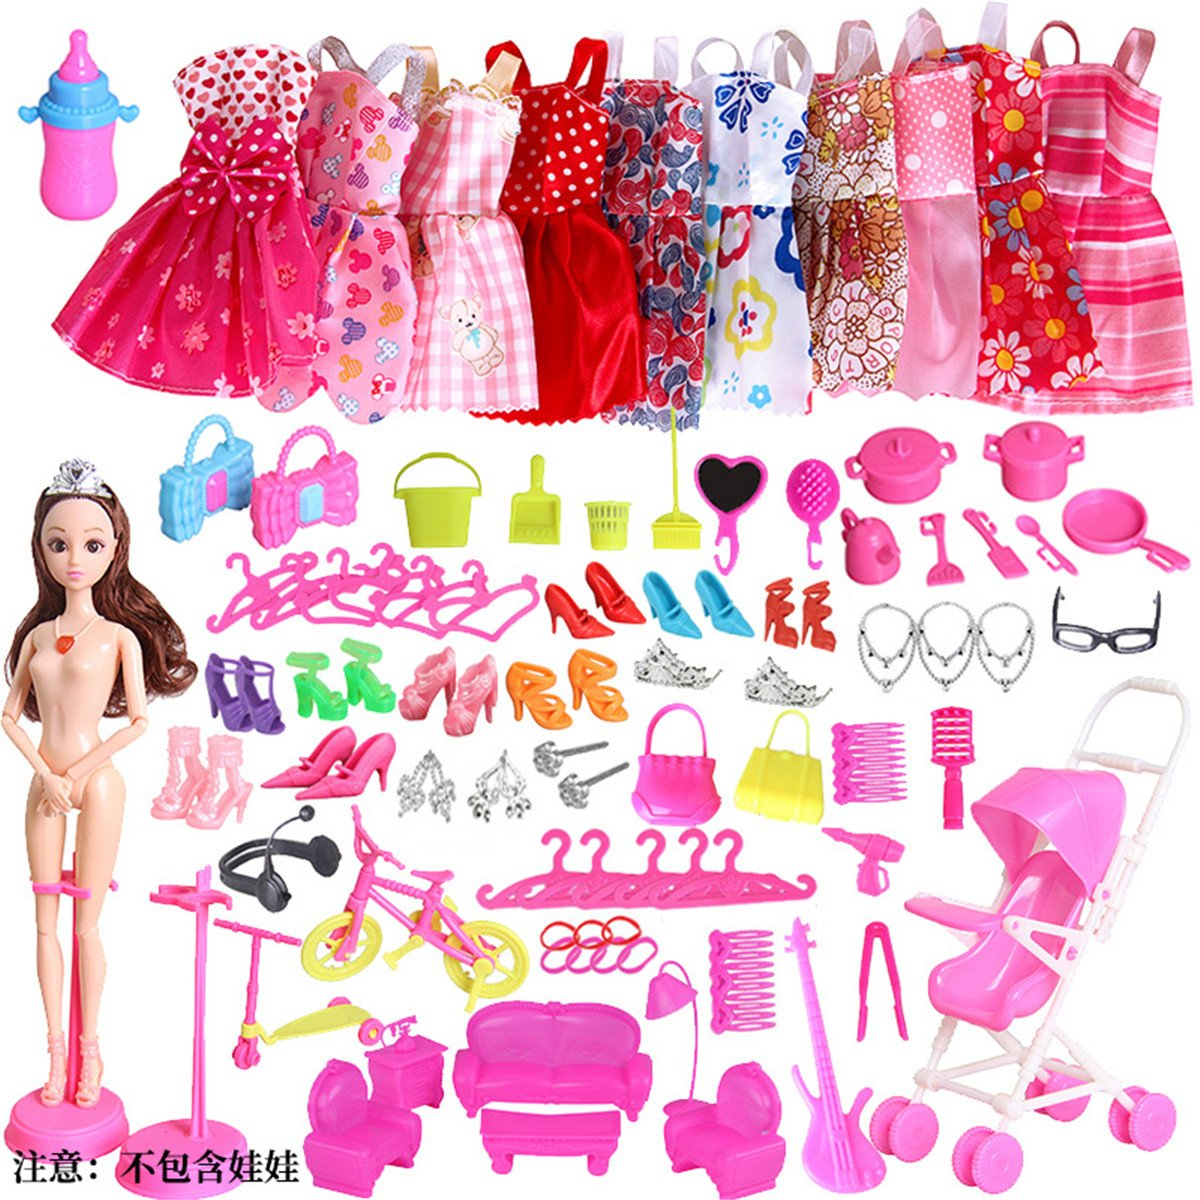 60 pcs Accessories Dolls Clothes for Doll Dresses Spree for Barbie Doll (Random) Only sky